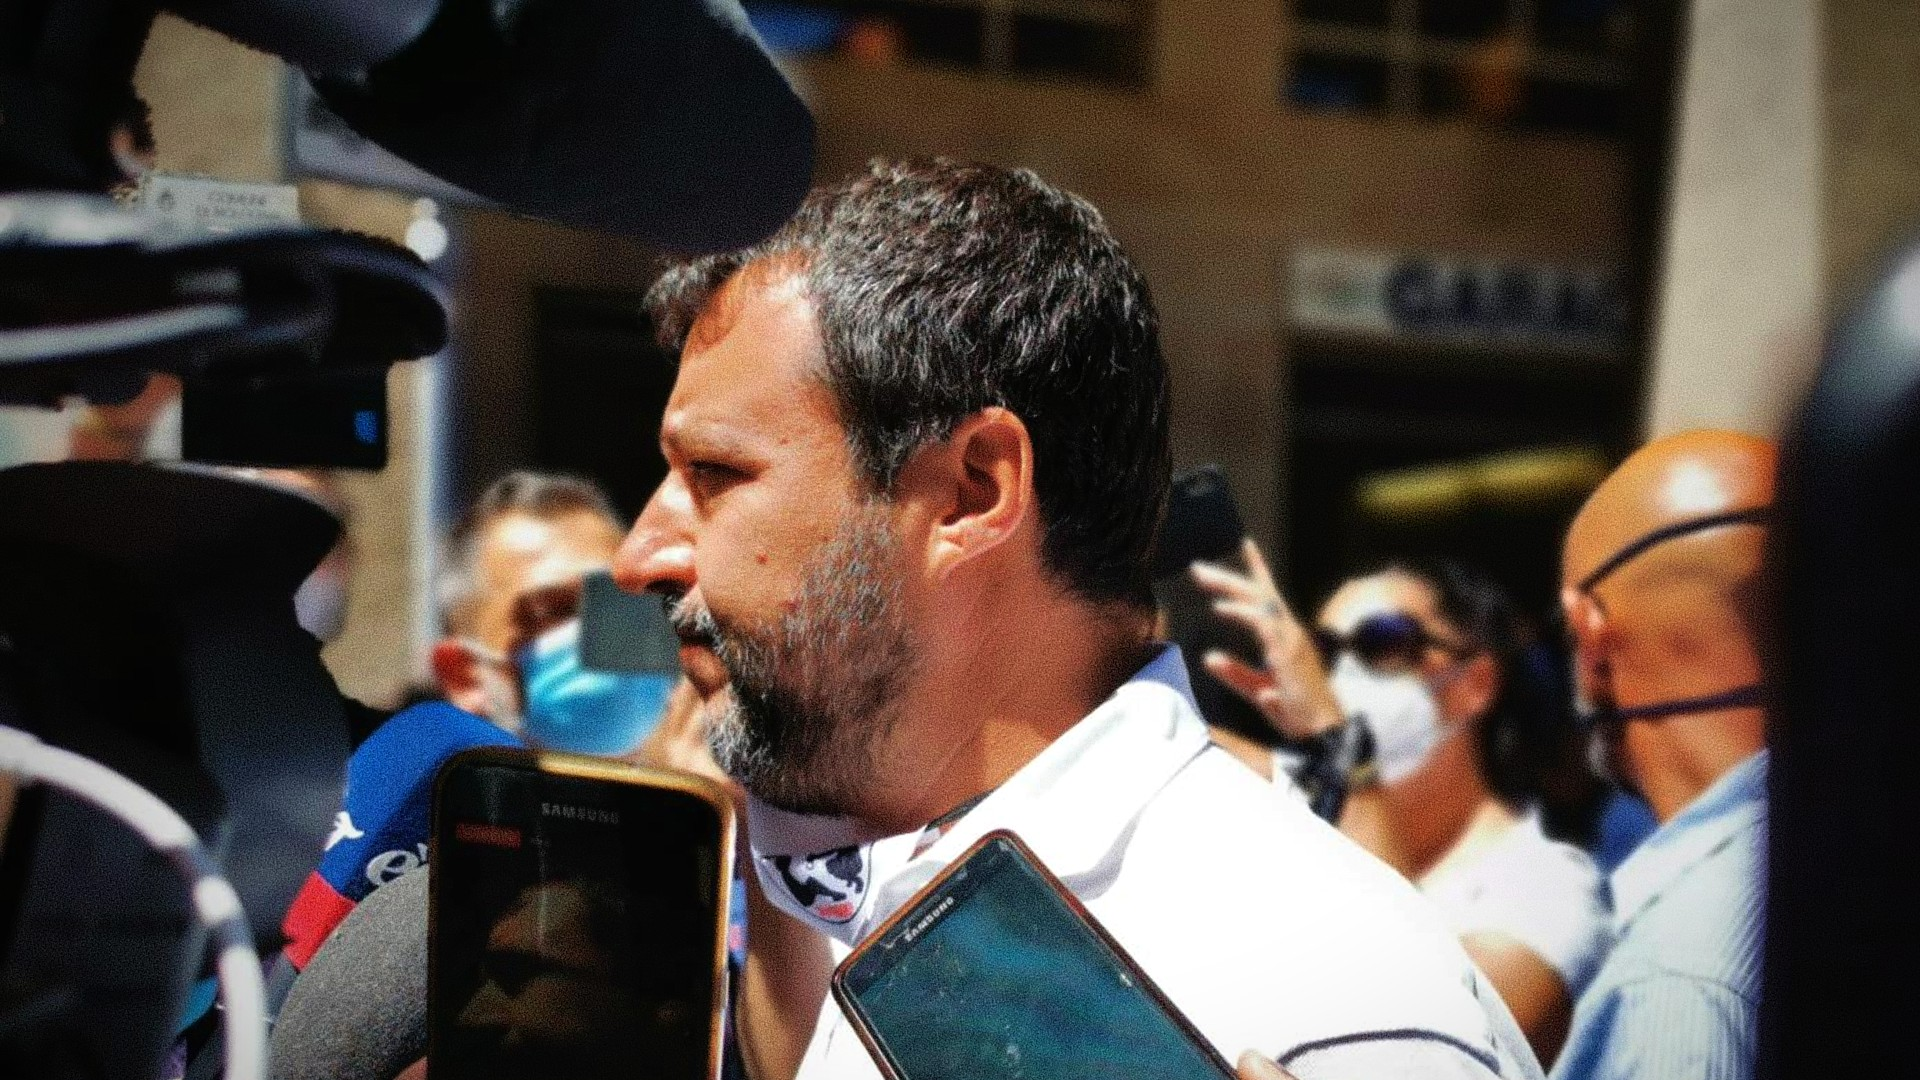 Dems Look To Take Salvini To Court Over Immigration...Again